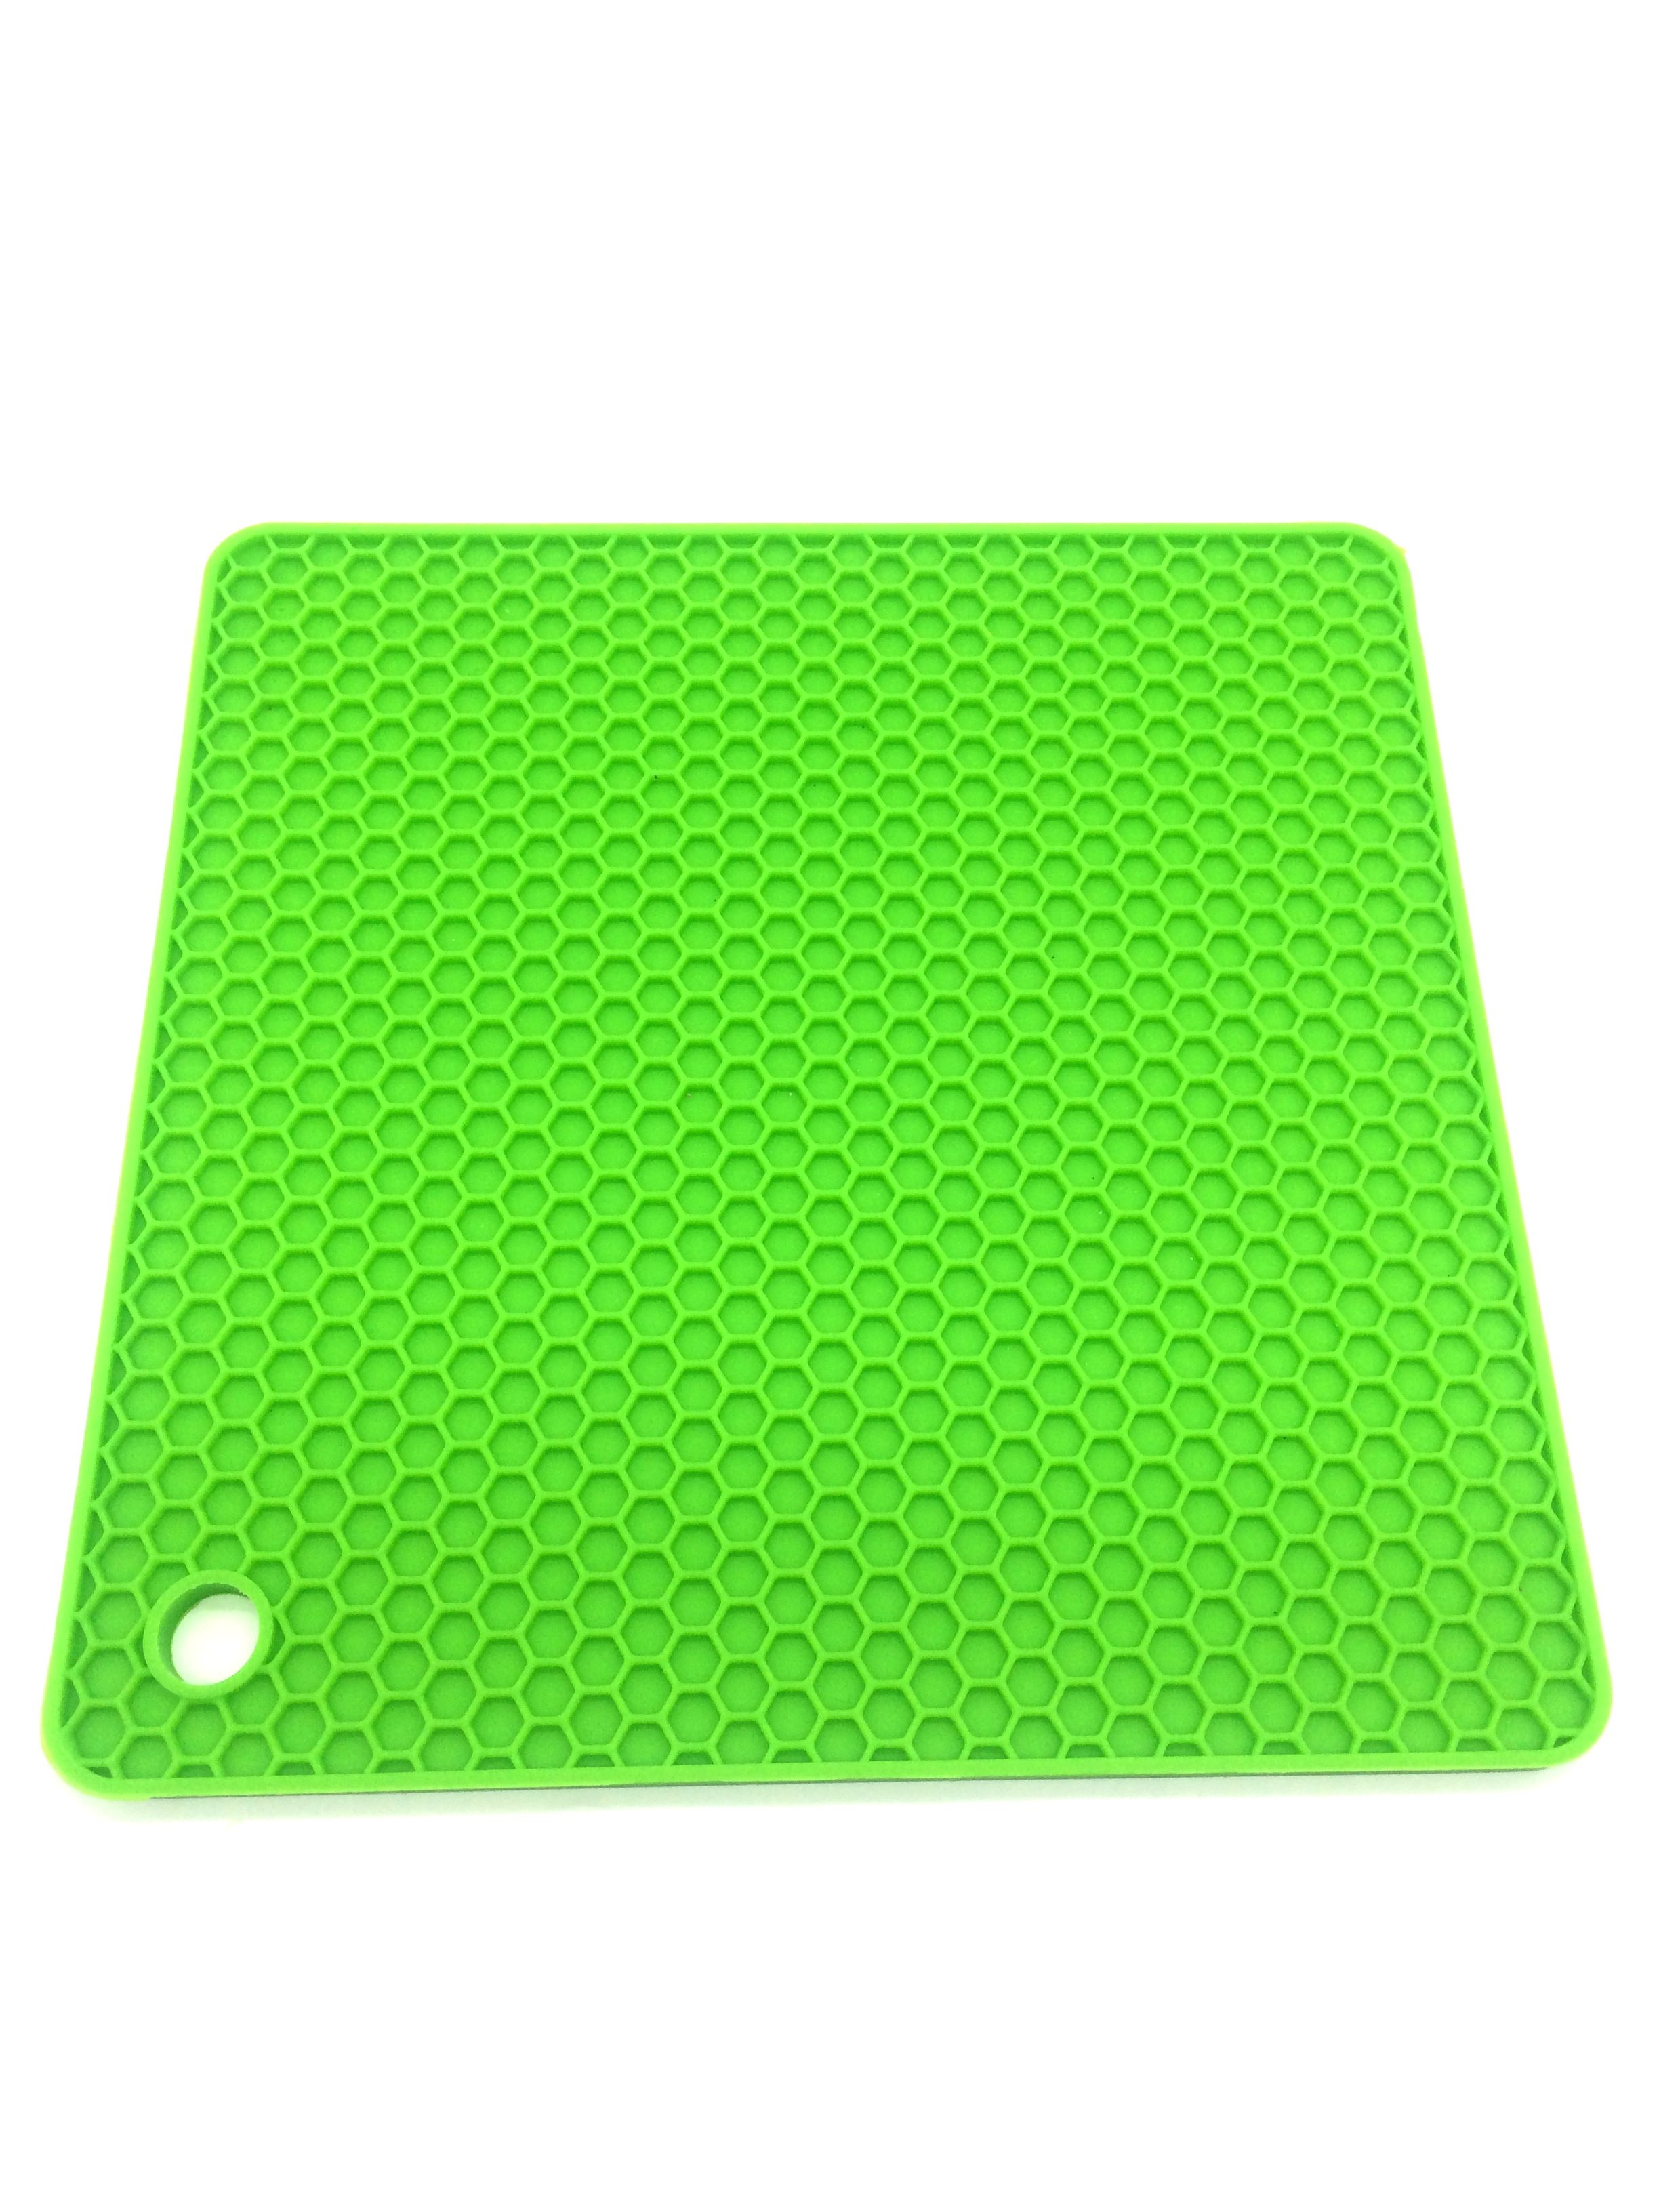 non skid insulation mats bga desk resistant heat showpin station silicone soldering pad itm iron air gun rework for welding mat hot